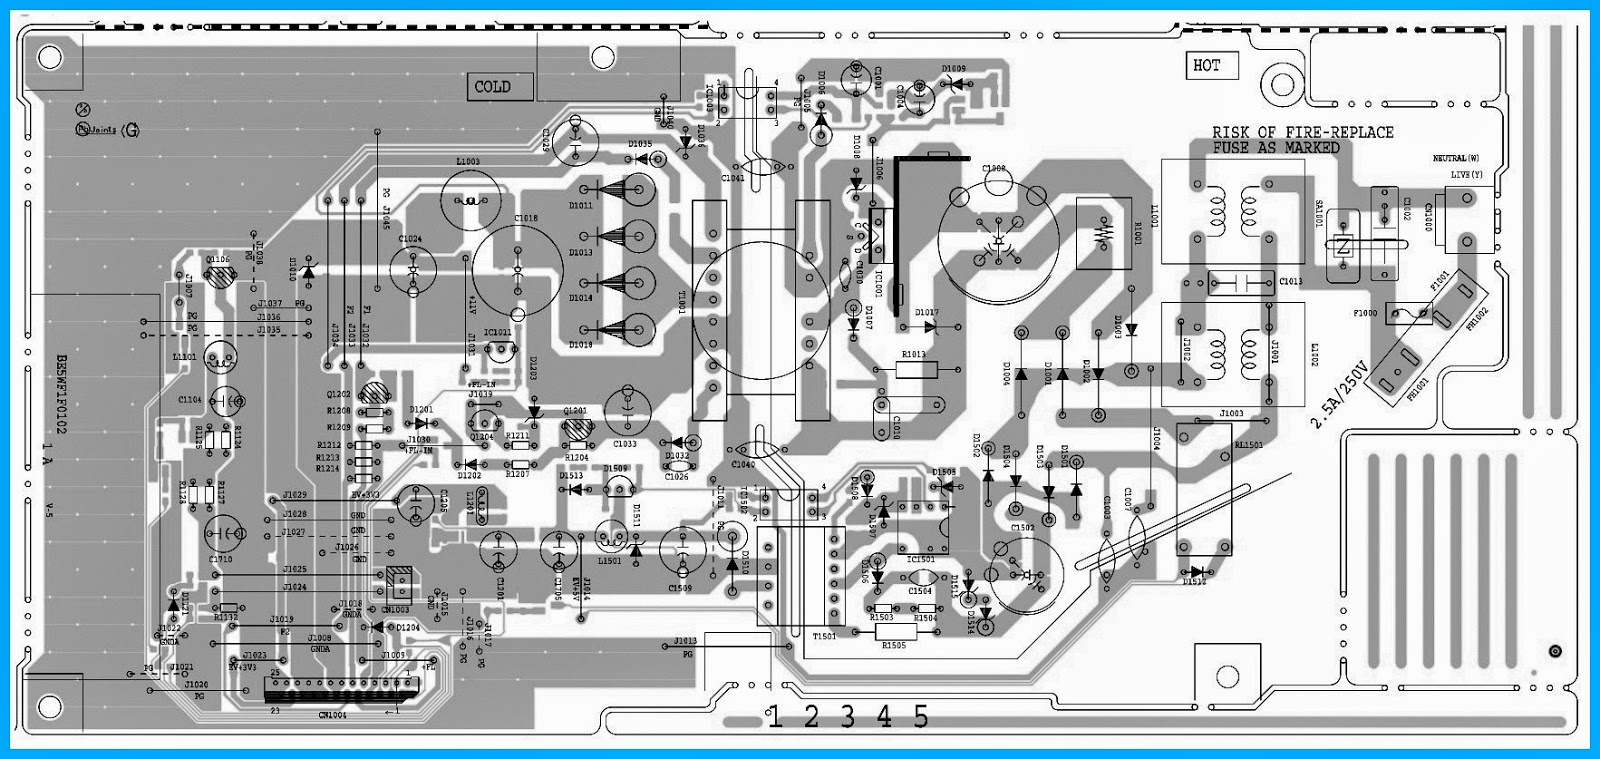 ps3 wiring diagram with Onkyo Bd Sp809 Blu Ray Disc Player Smps on Xbox 360 Controller Led Wiring Diagram Wiring Diagrams moreover Viewtopic as well 5pin Female Micro Usb To 11pin Male Micro Usb Adapter P 766 furthermore Scart Wiring Diagram moreover P93.